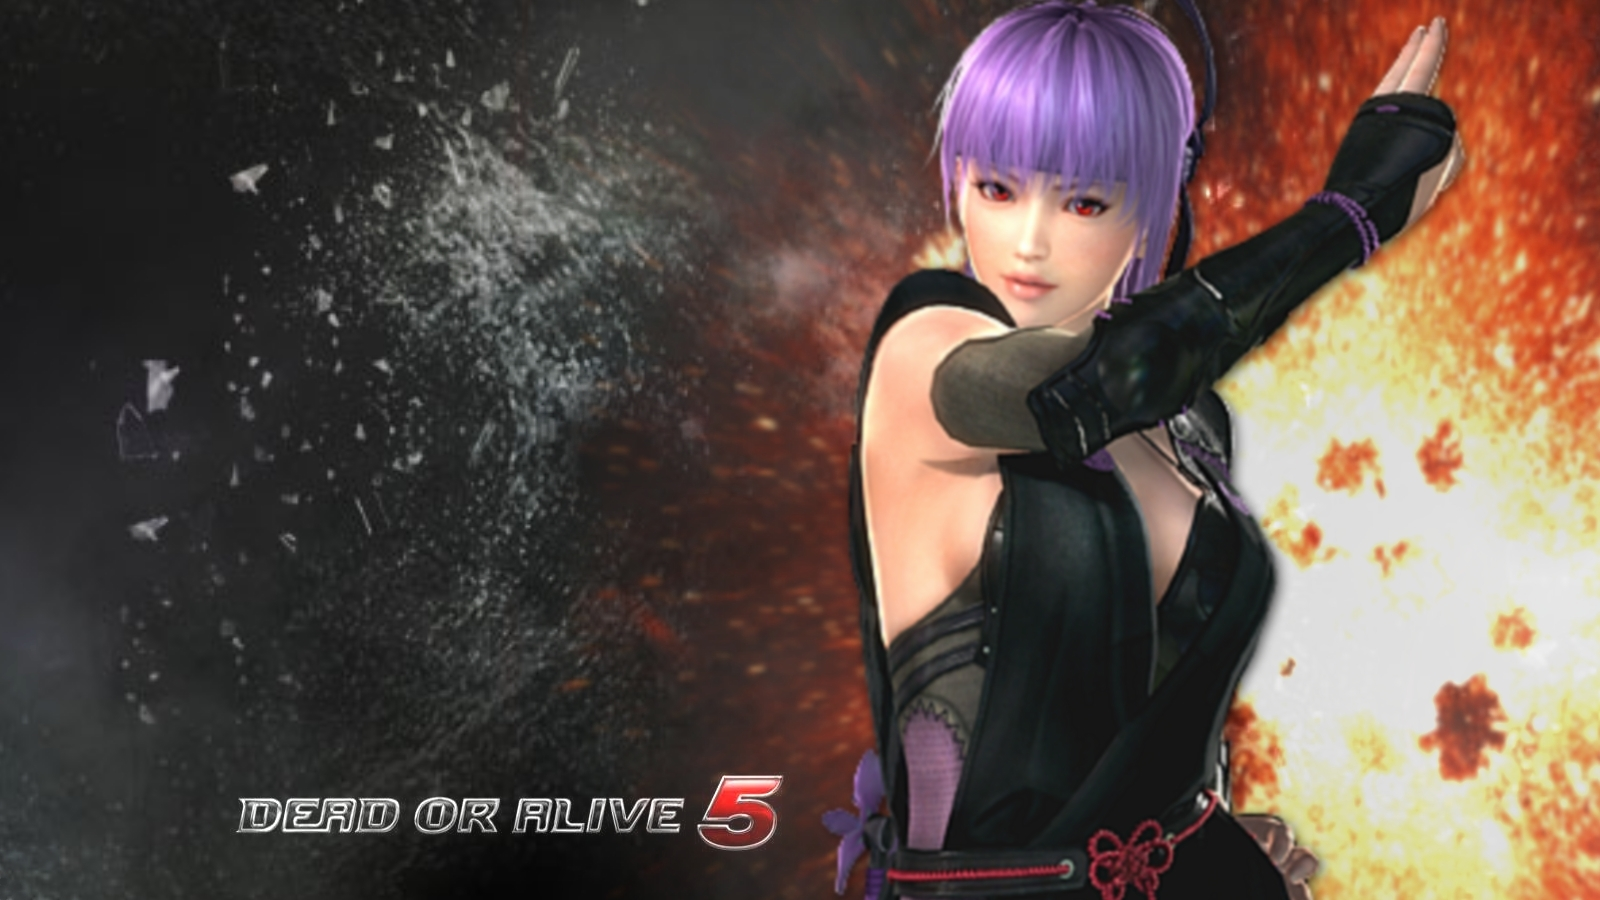 38 Dead Or Alive Hitomi Wallpapers On Wallpapersafari